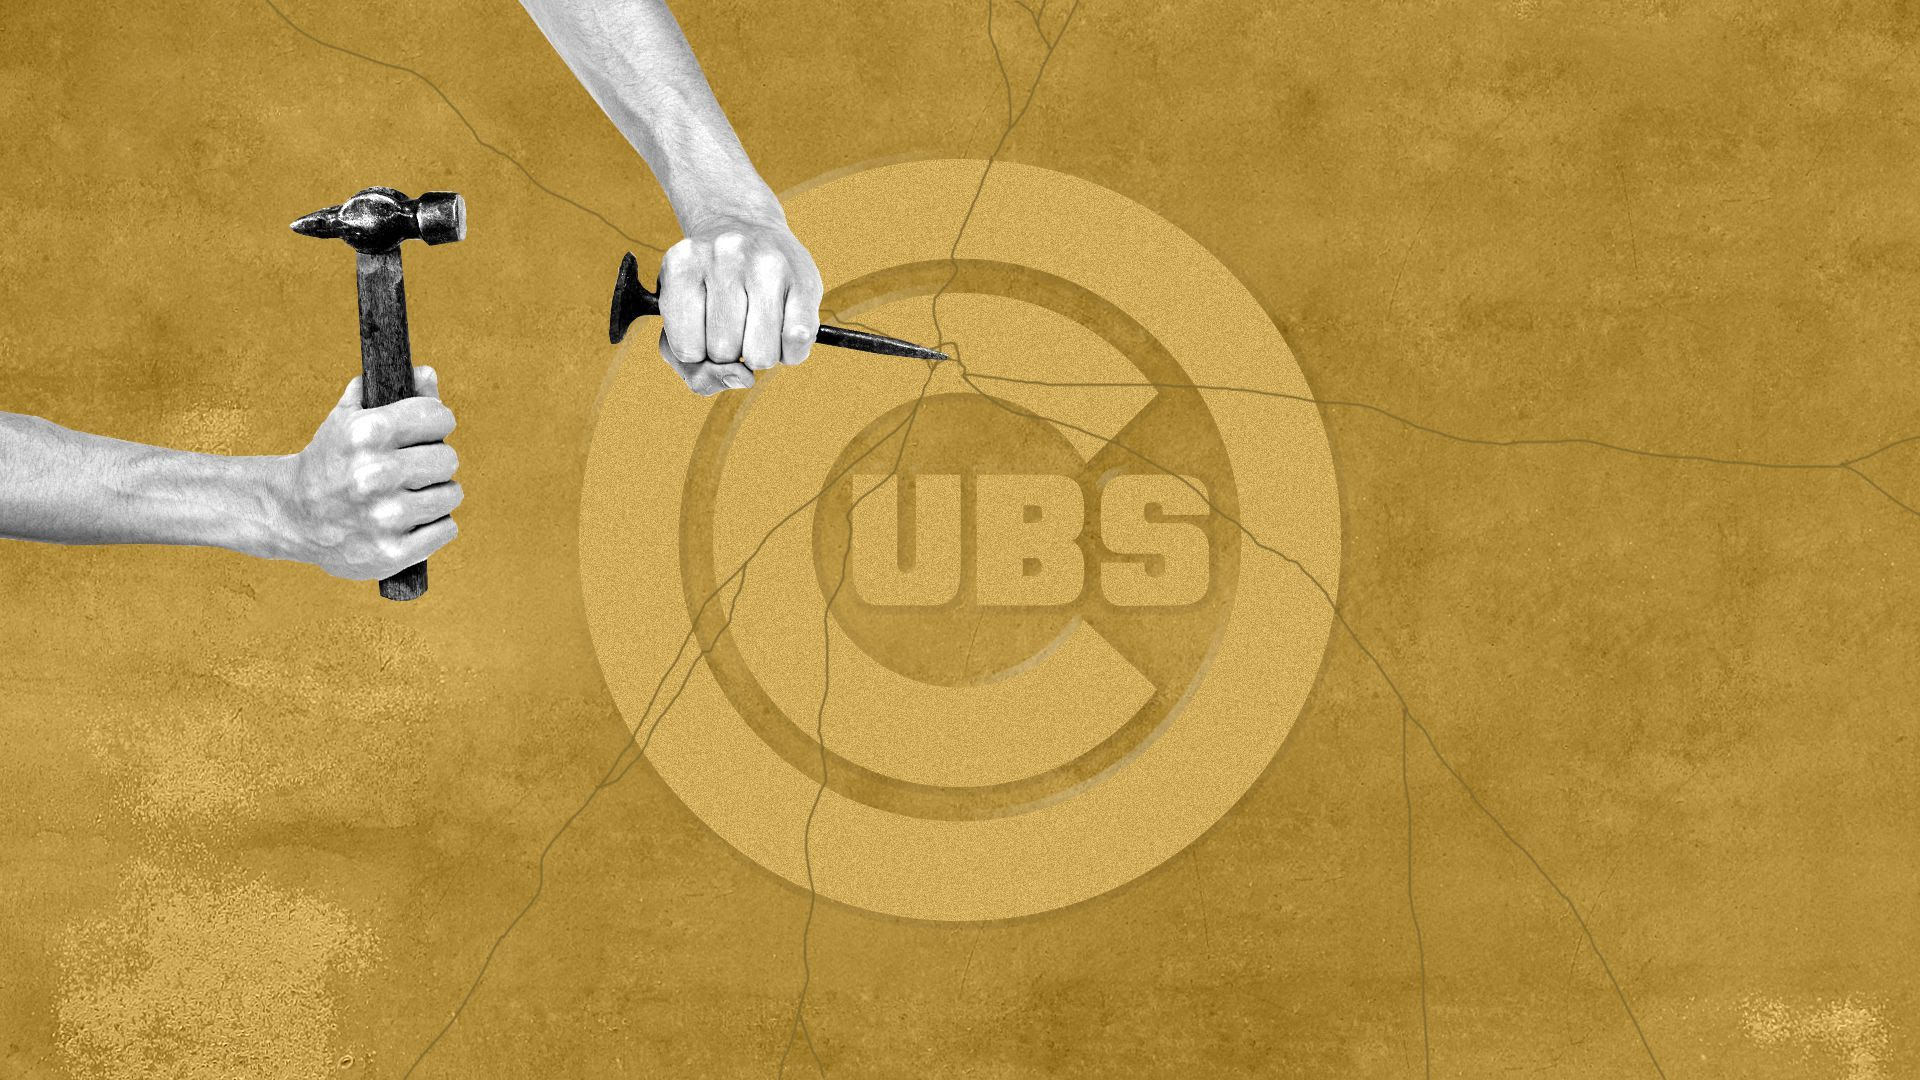 Illustration of a hand breaking apart a Cubs logo